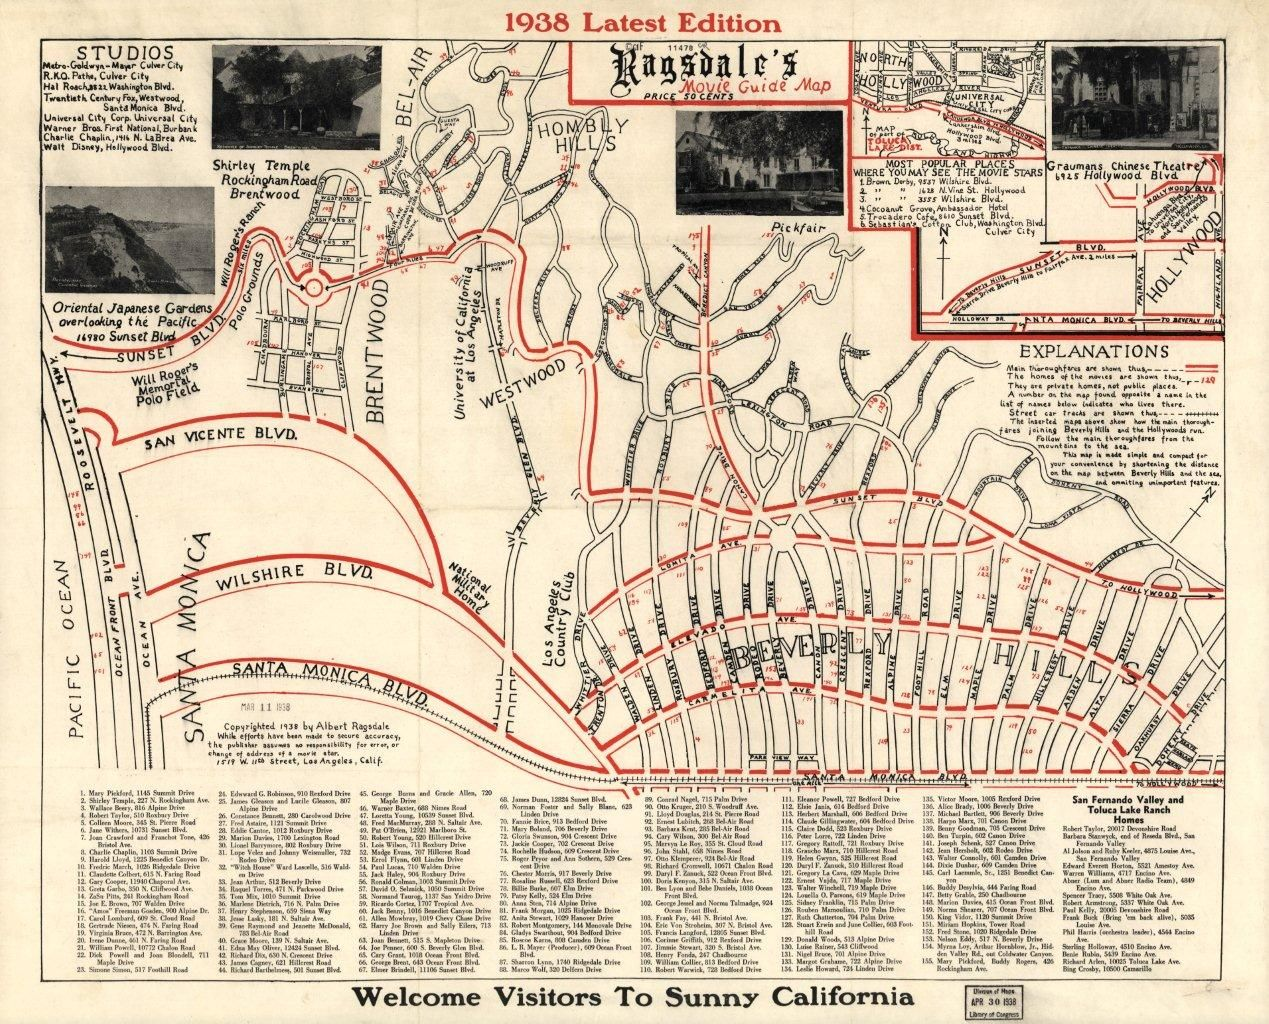 1938 Map To Movie Stars Homes And Famous Surrounding Places